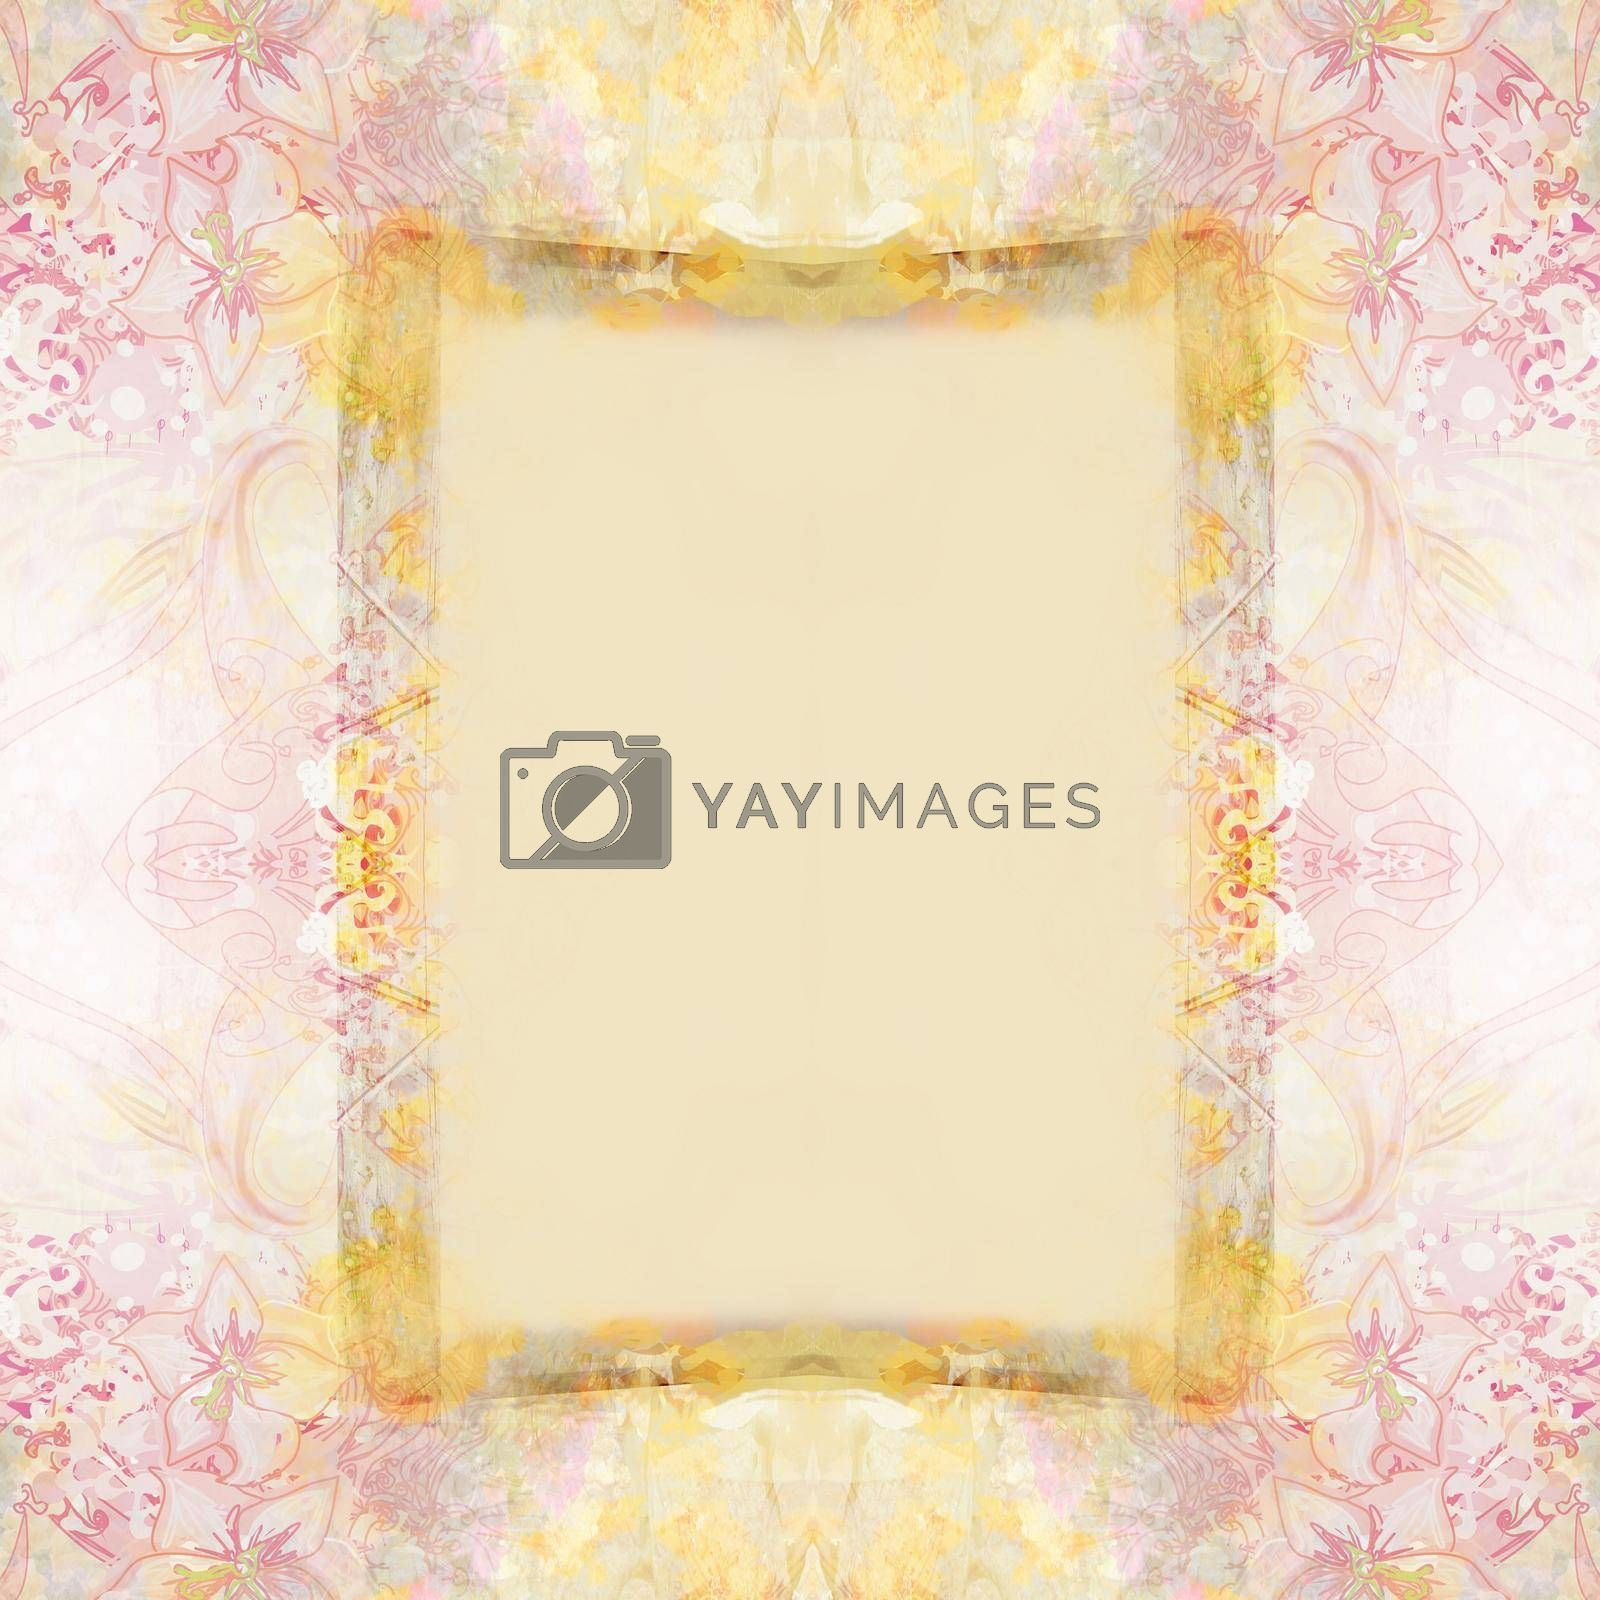 Royalty free image of Vintage Grunge Frame For Congratulation With Flowers  by JackyBrown